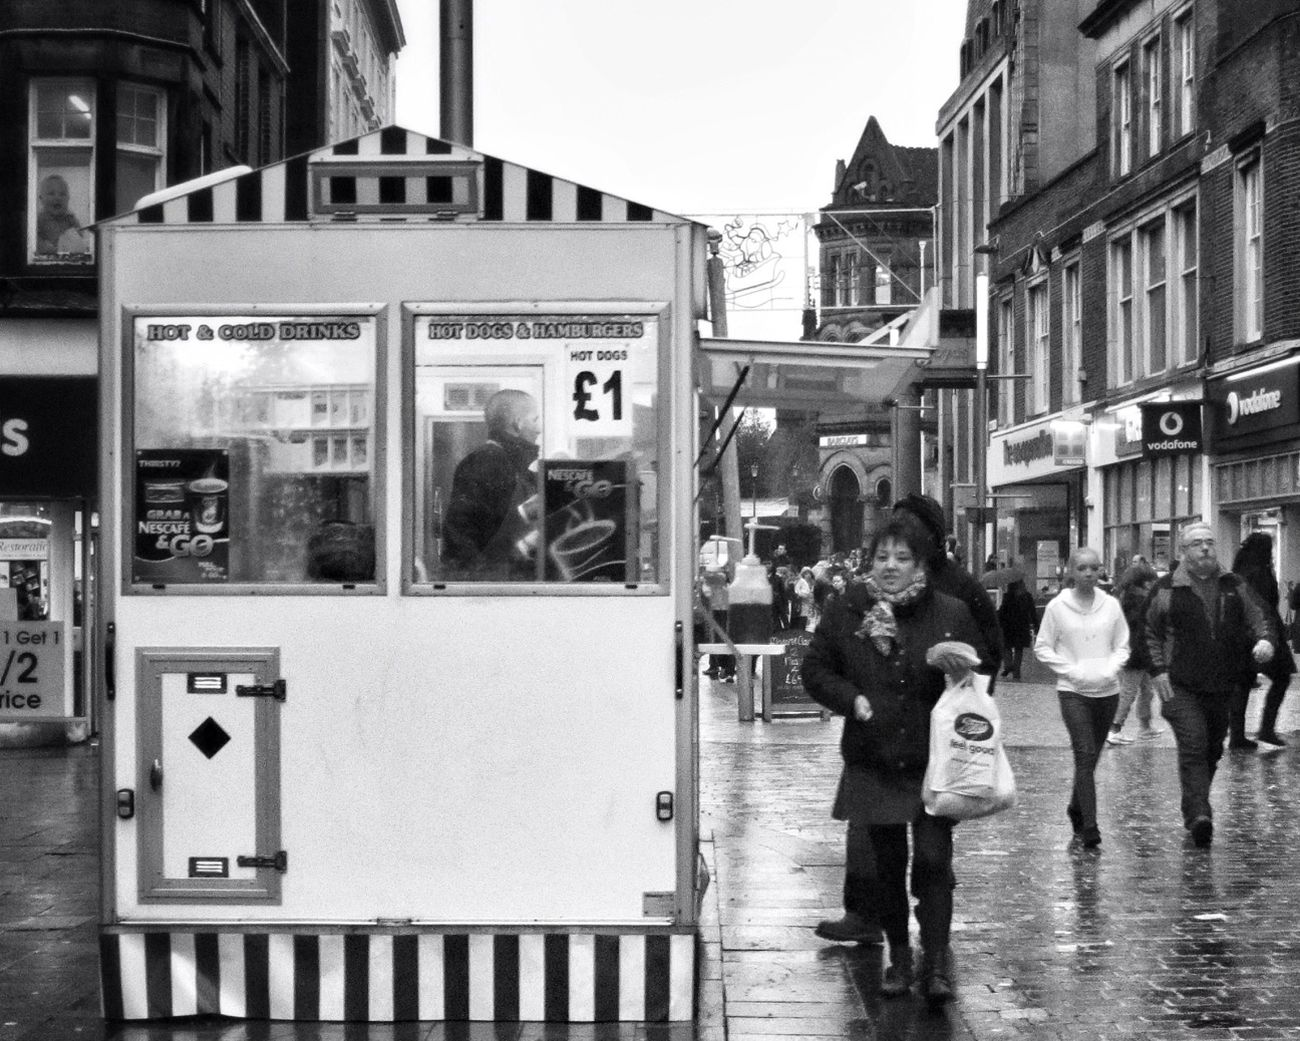 Hot Dogs & Hamburgers £1 Streetphotography People Kiosk Blackandwhite Black And White Street Life Hamburger Street Portrait On The Streets Streetphoto_bw Hot Dogs Wolverhampton People Watching